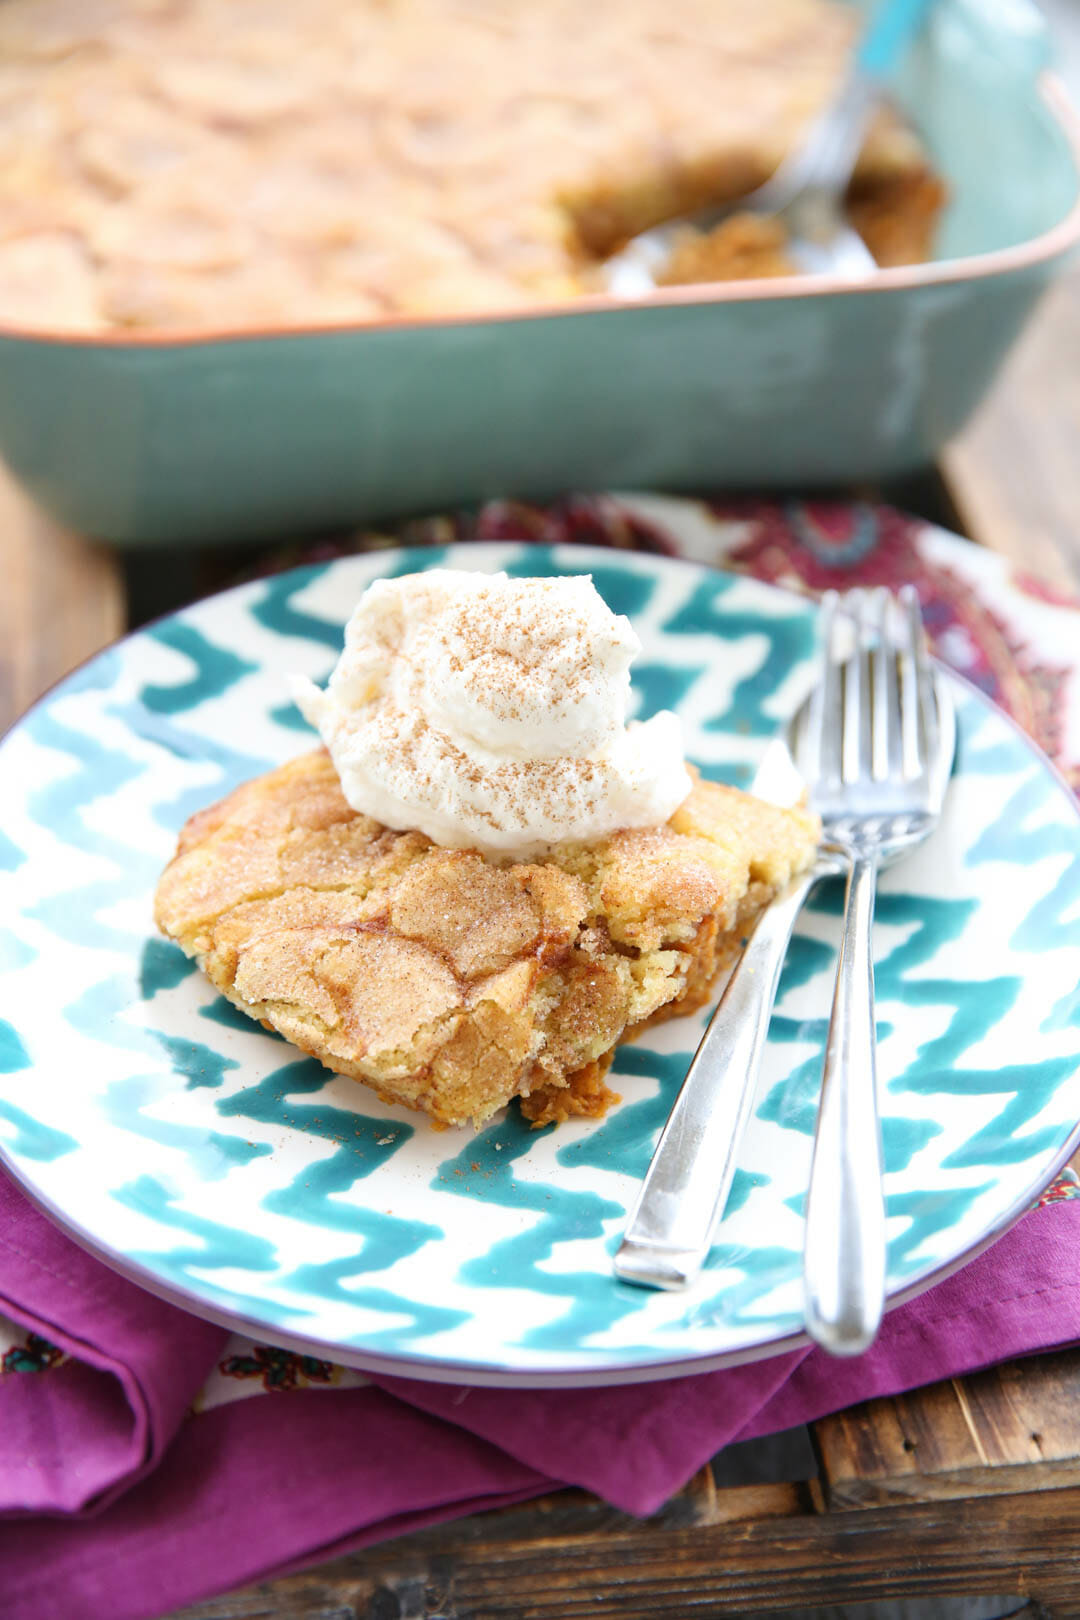 Thanksgiving Dessert: Pumpkin Snickerdoodle Cobbler